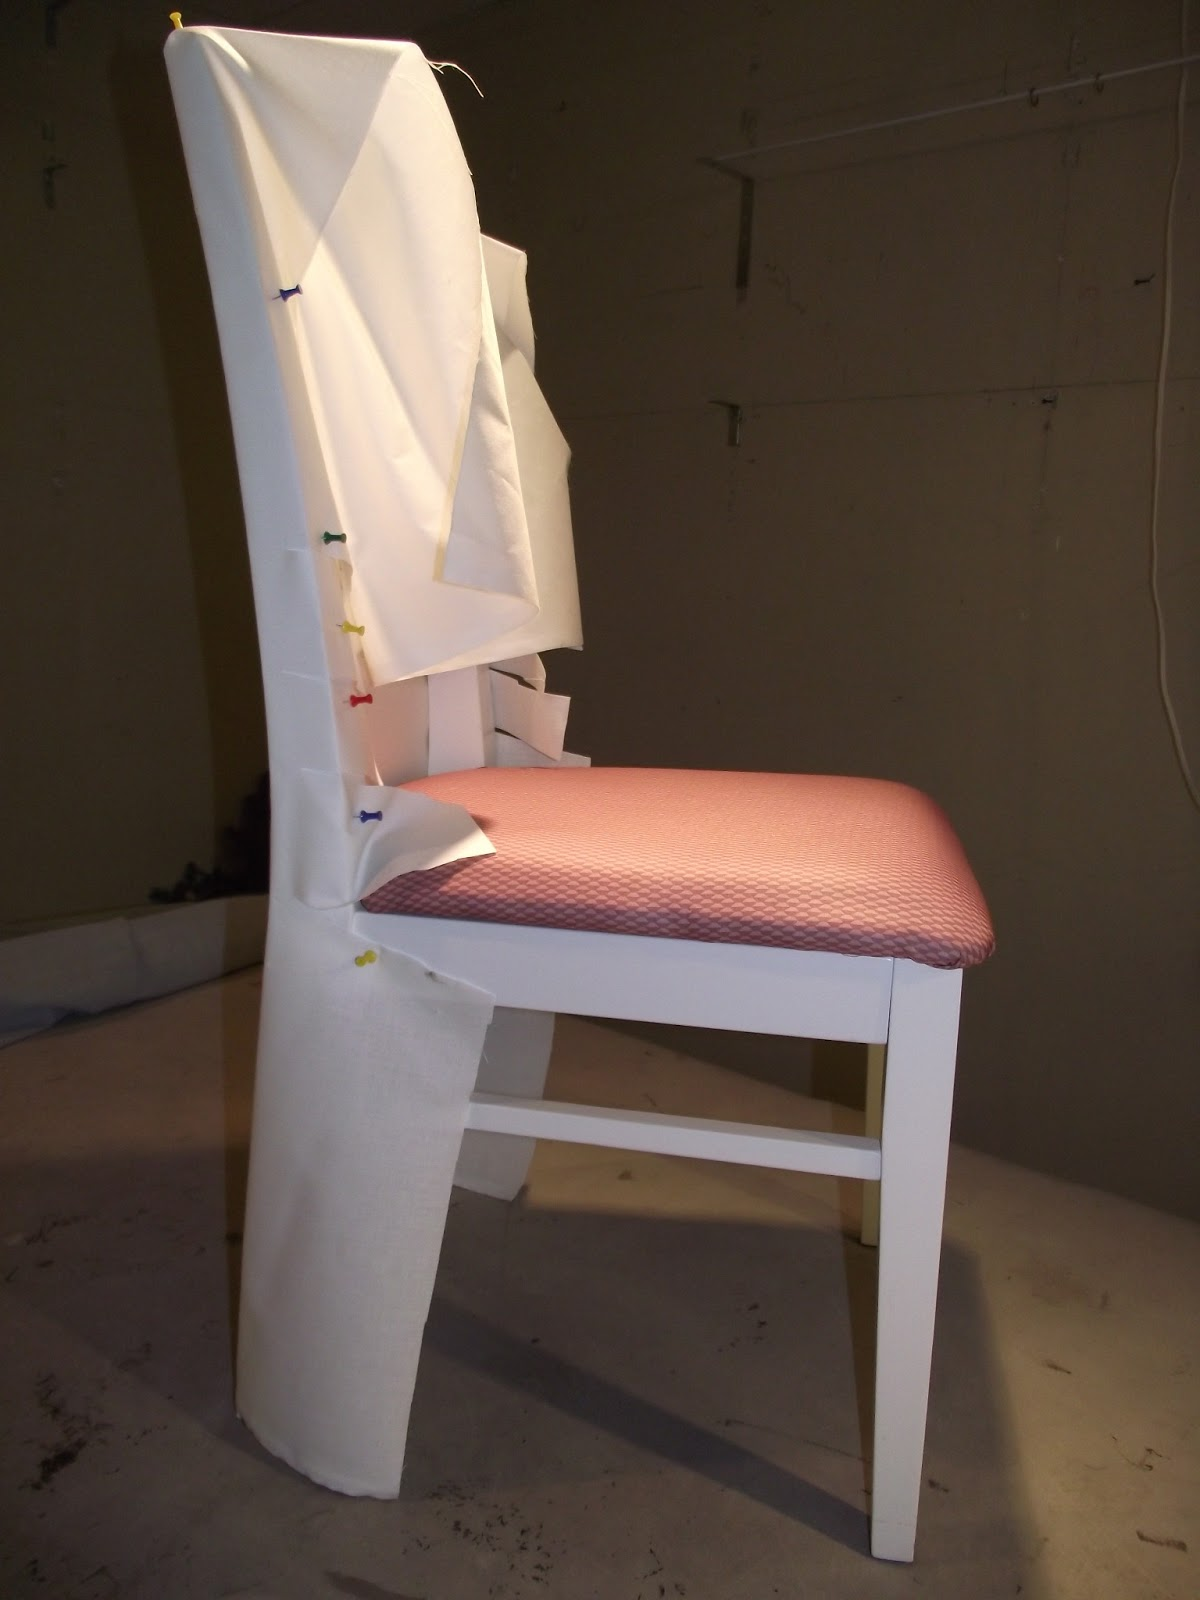 When The Chair Has A Wooden Back I Canu0027t Resist Using The Slipcover To Make  The Chair More Comfortable, So If Youu0027re Only Doing One Chair Save The  Lining ...